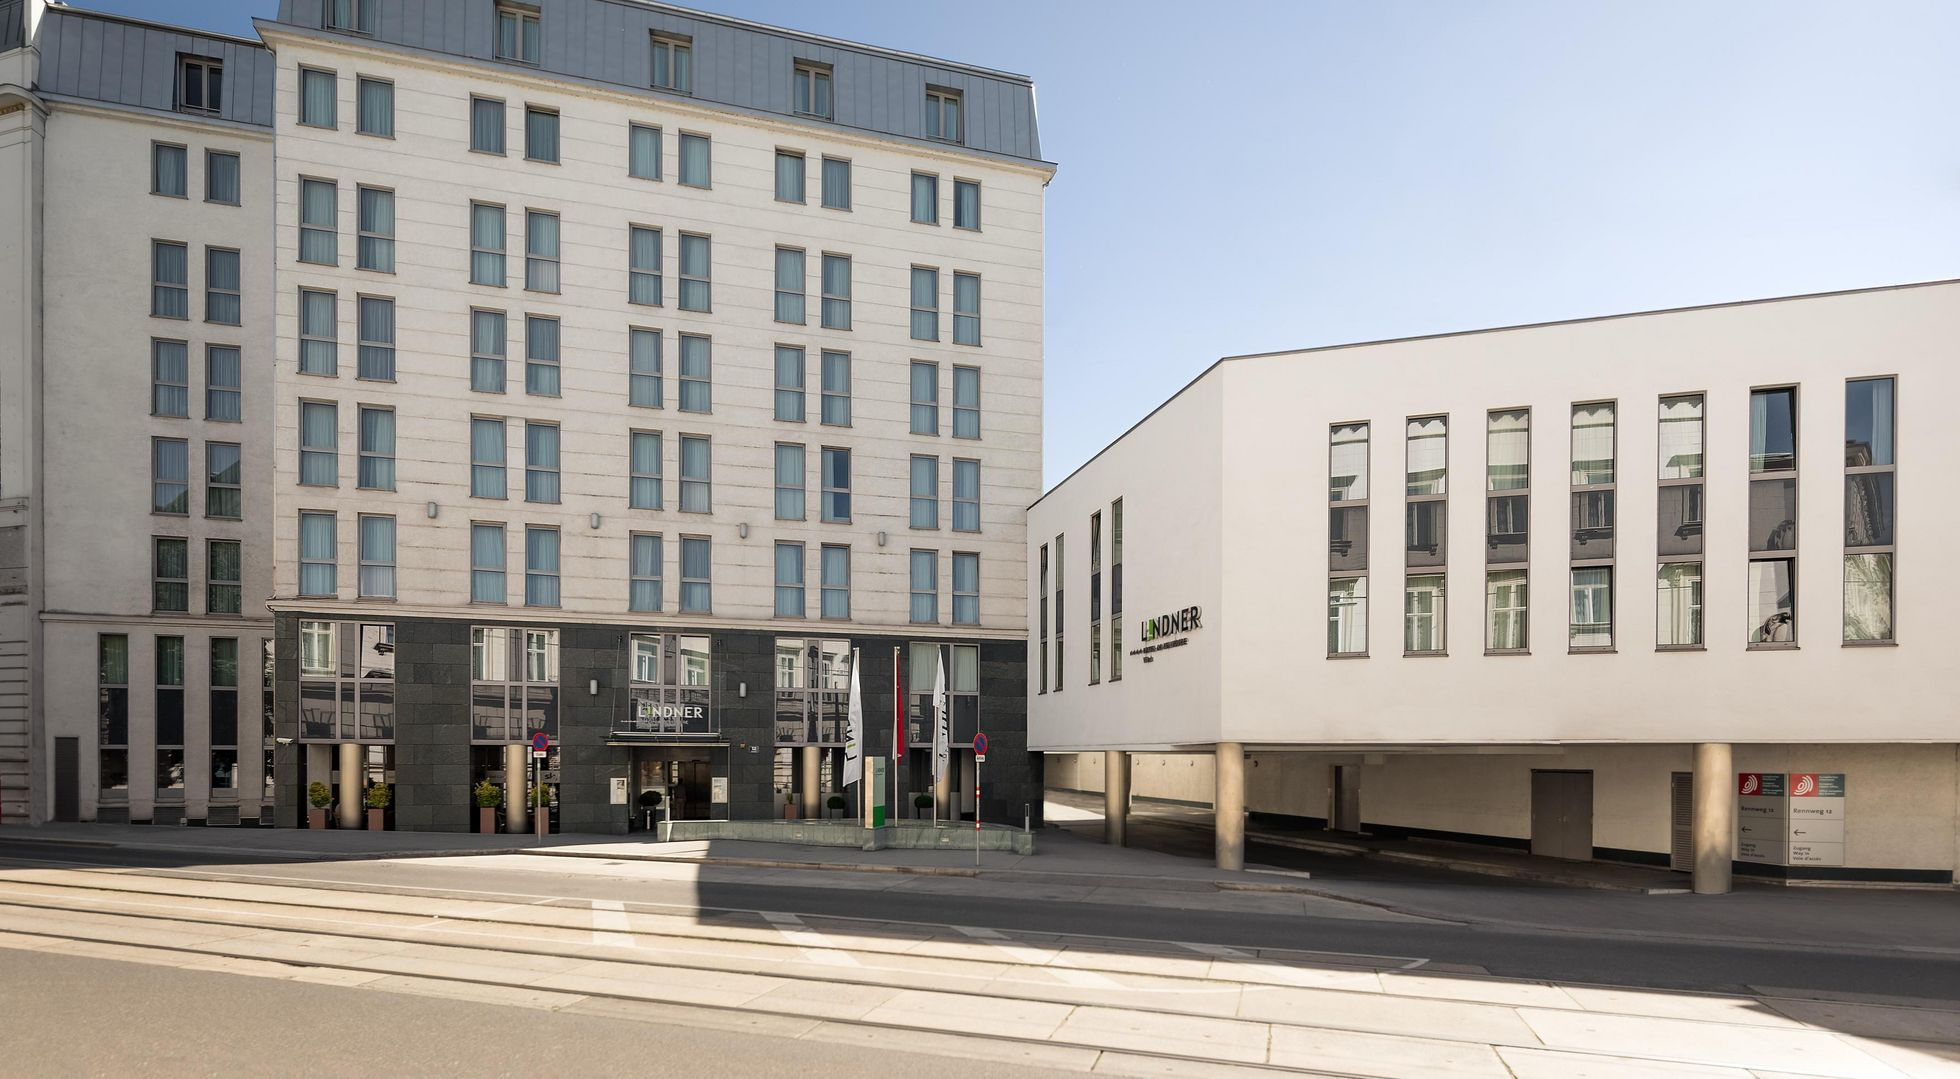 [Translate to English:]